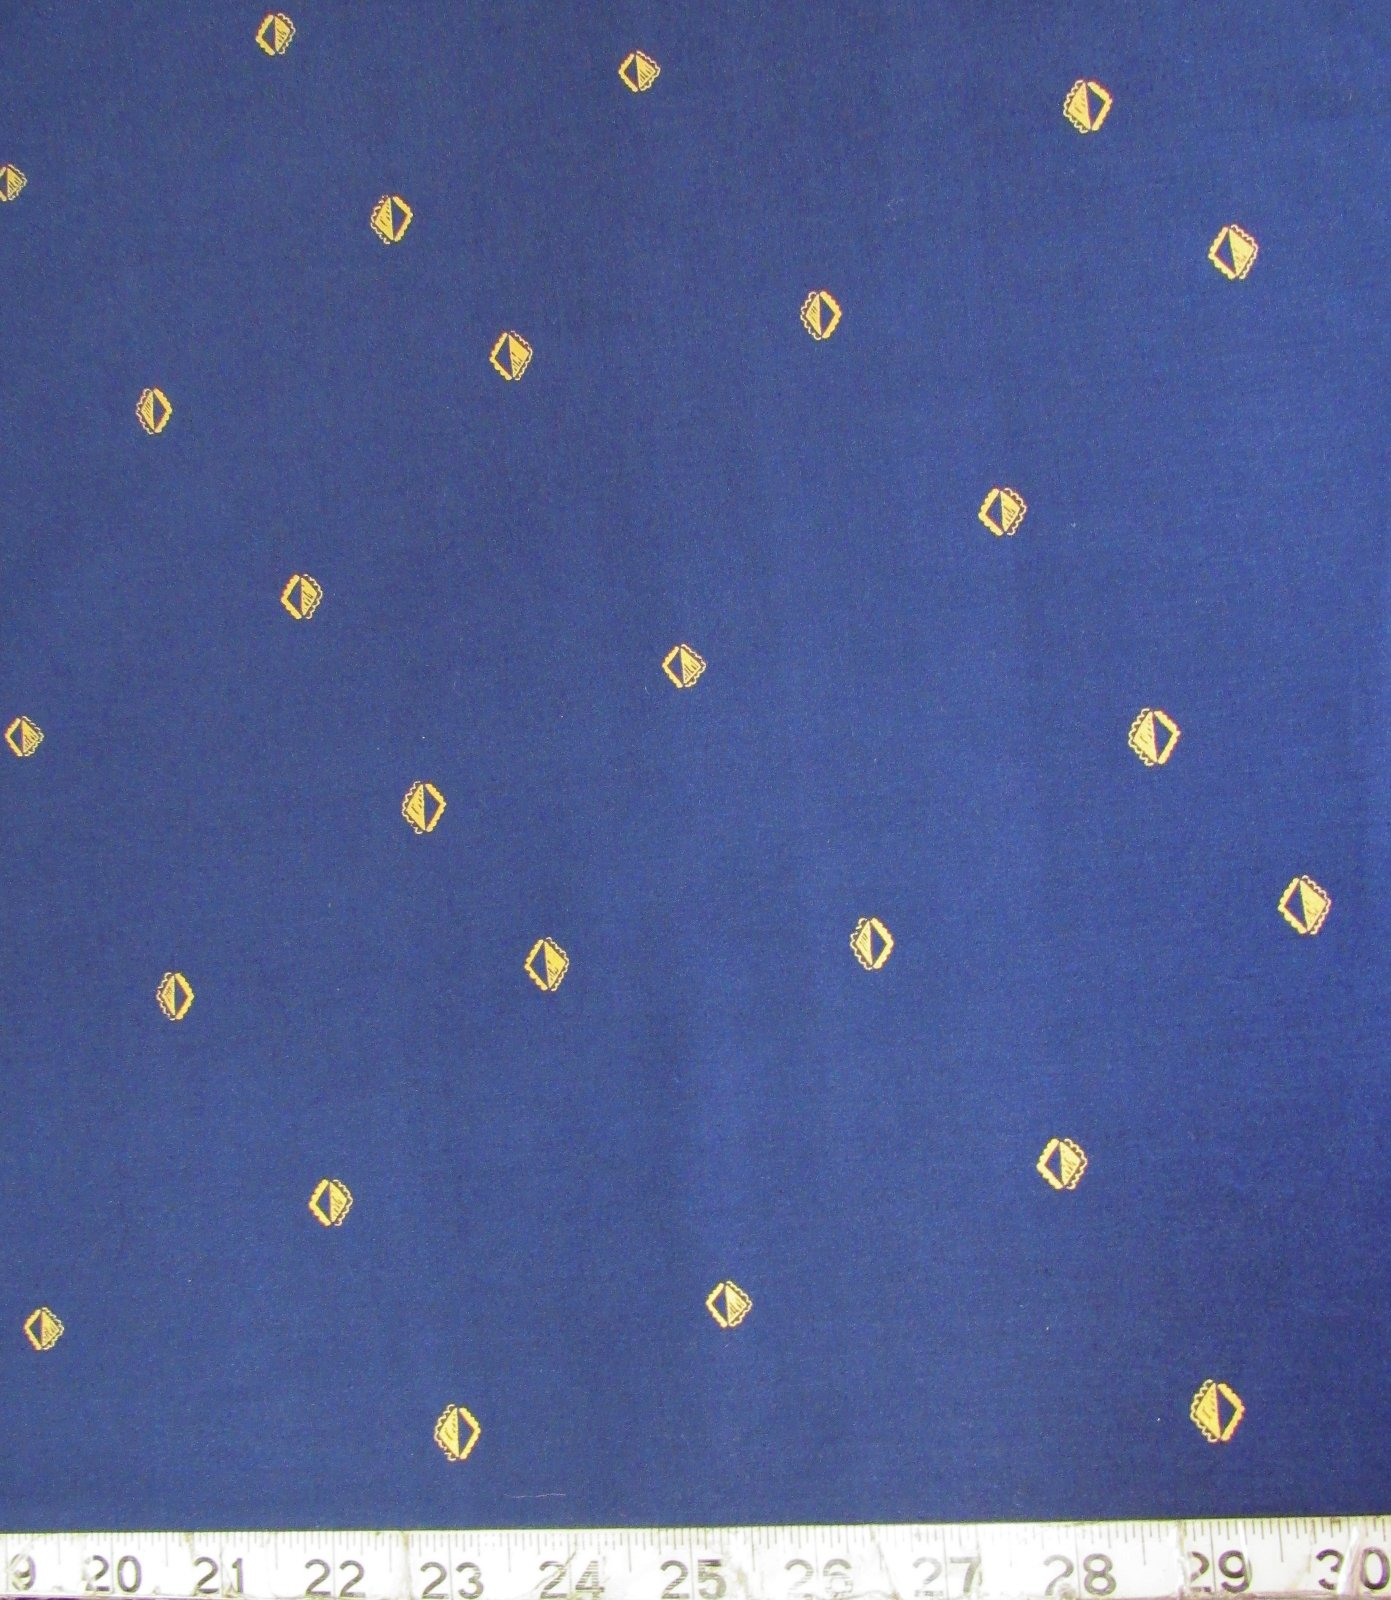 Cotton & Steel SUNRISE INDIGO METALLIC GOLD by Alexia Abegg